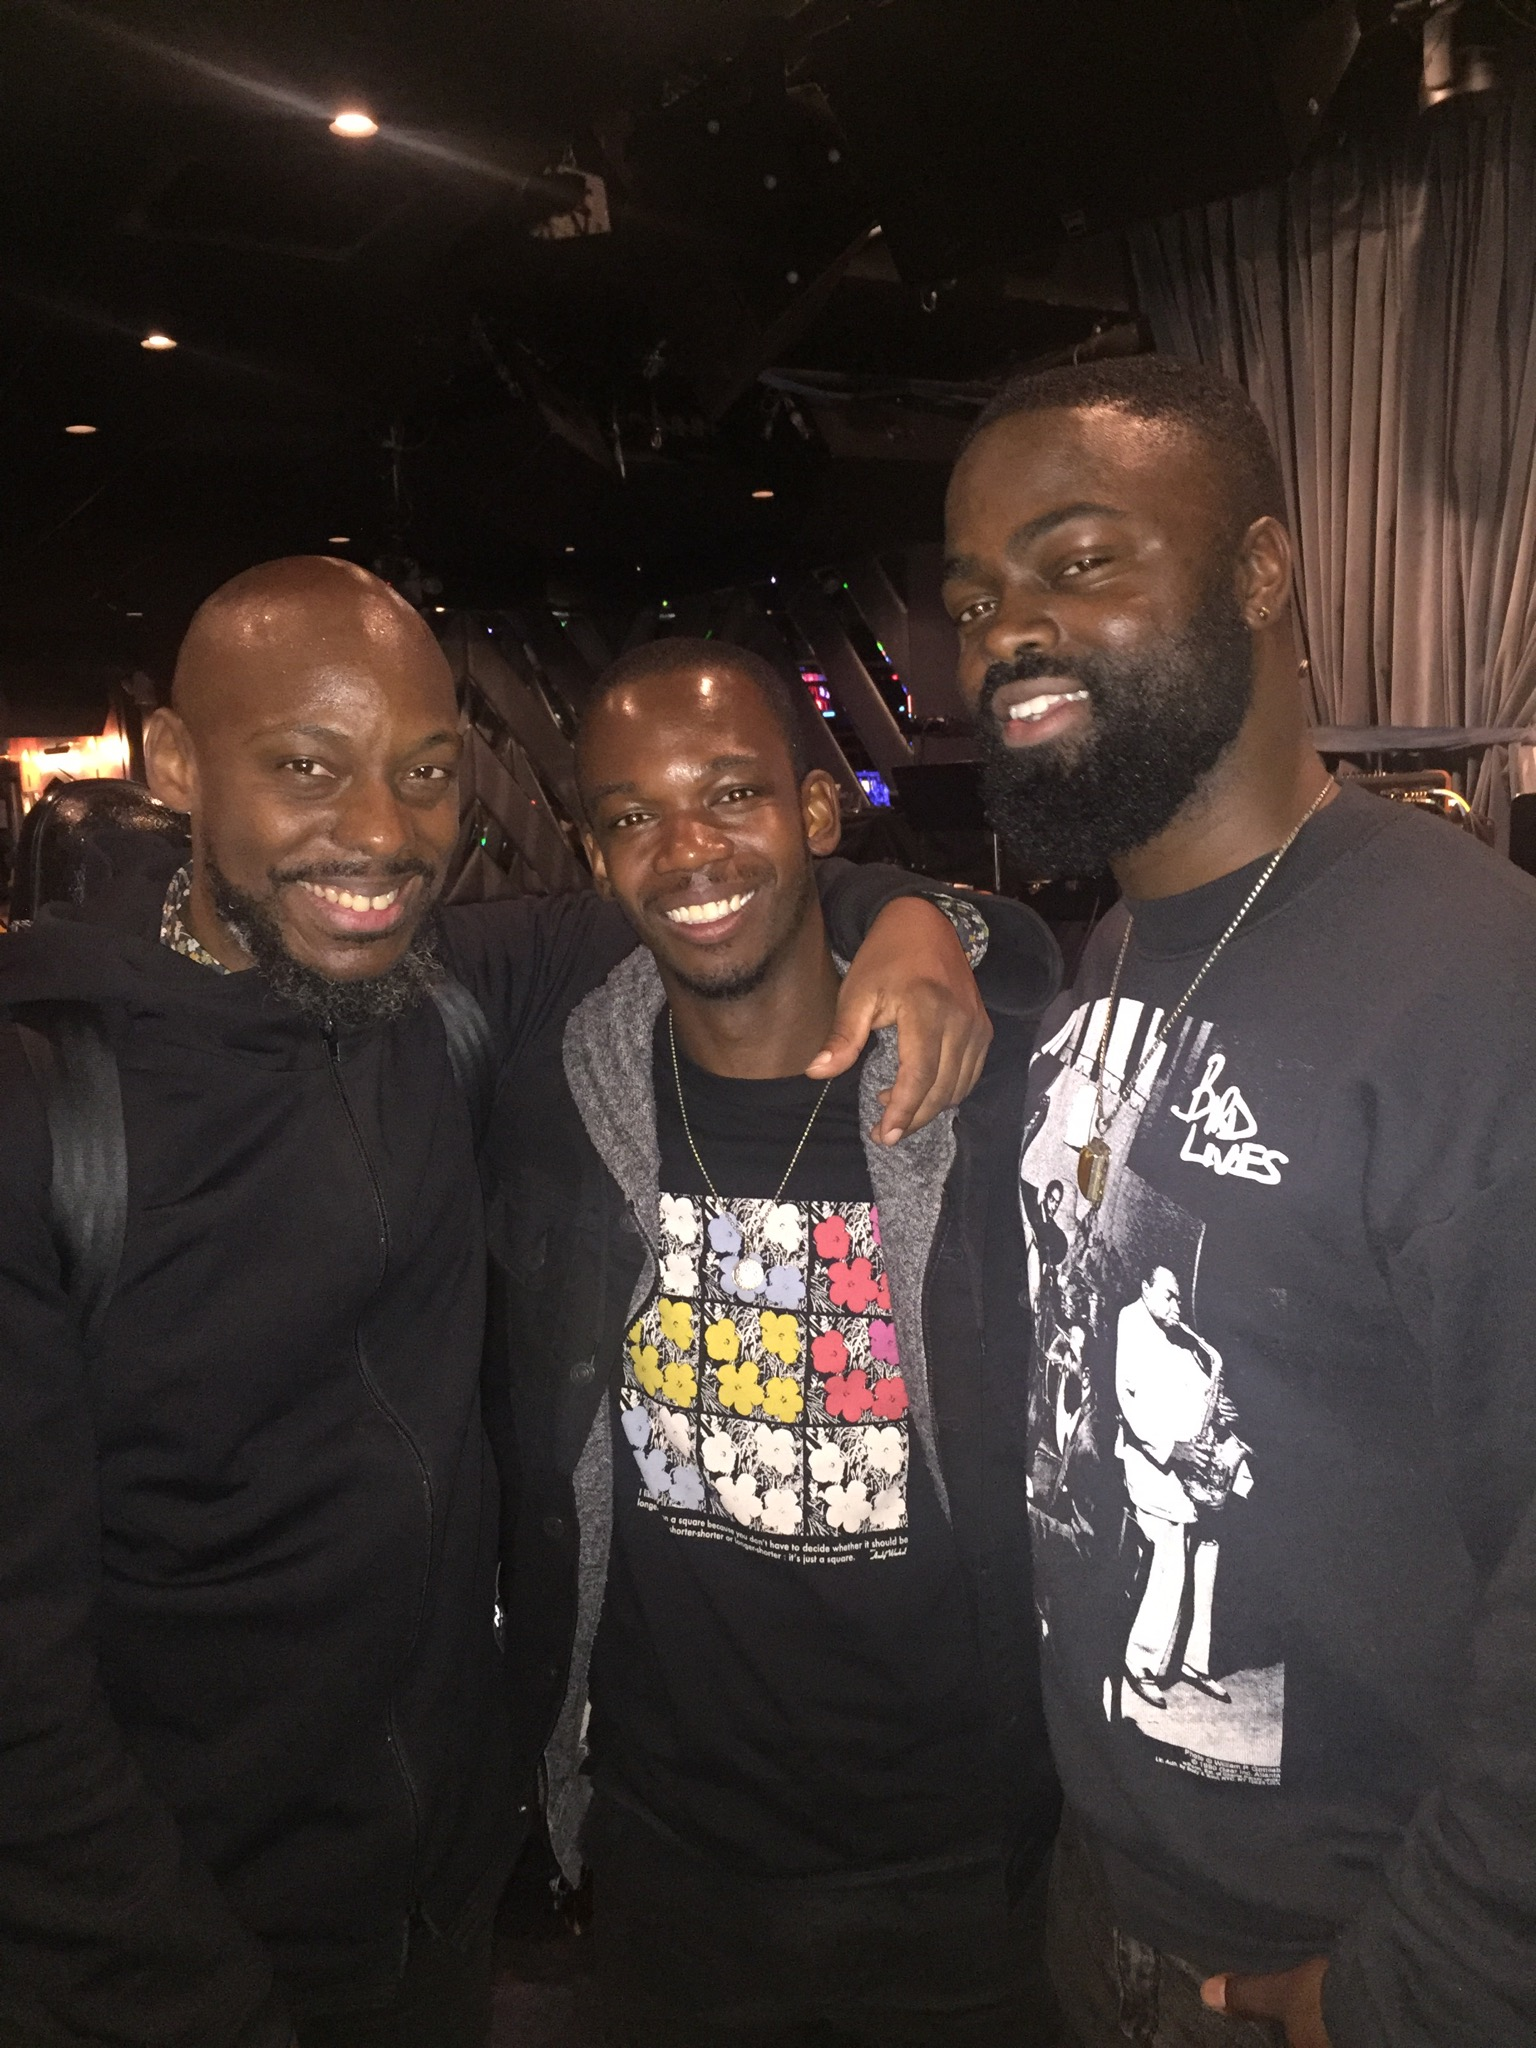 JSWISS was a guest performer with acclaimed saxophonist Marcus Strickland (pictured left) for his show at the Bluenote NYC with an outstanding band including Big Yuki(Keyboards), Kyle Miles (Bass) and (pictured right) Marcus Gilmore (drums)